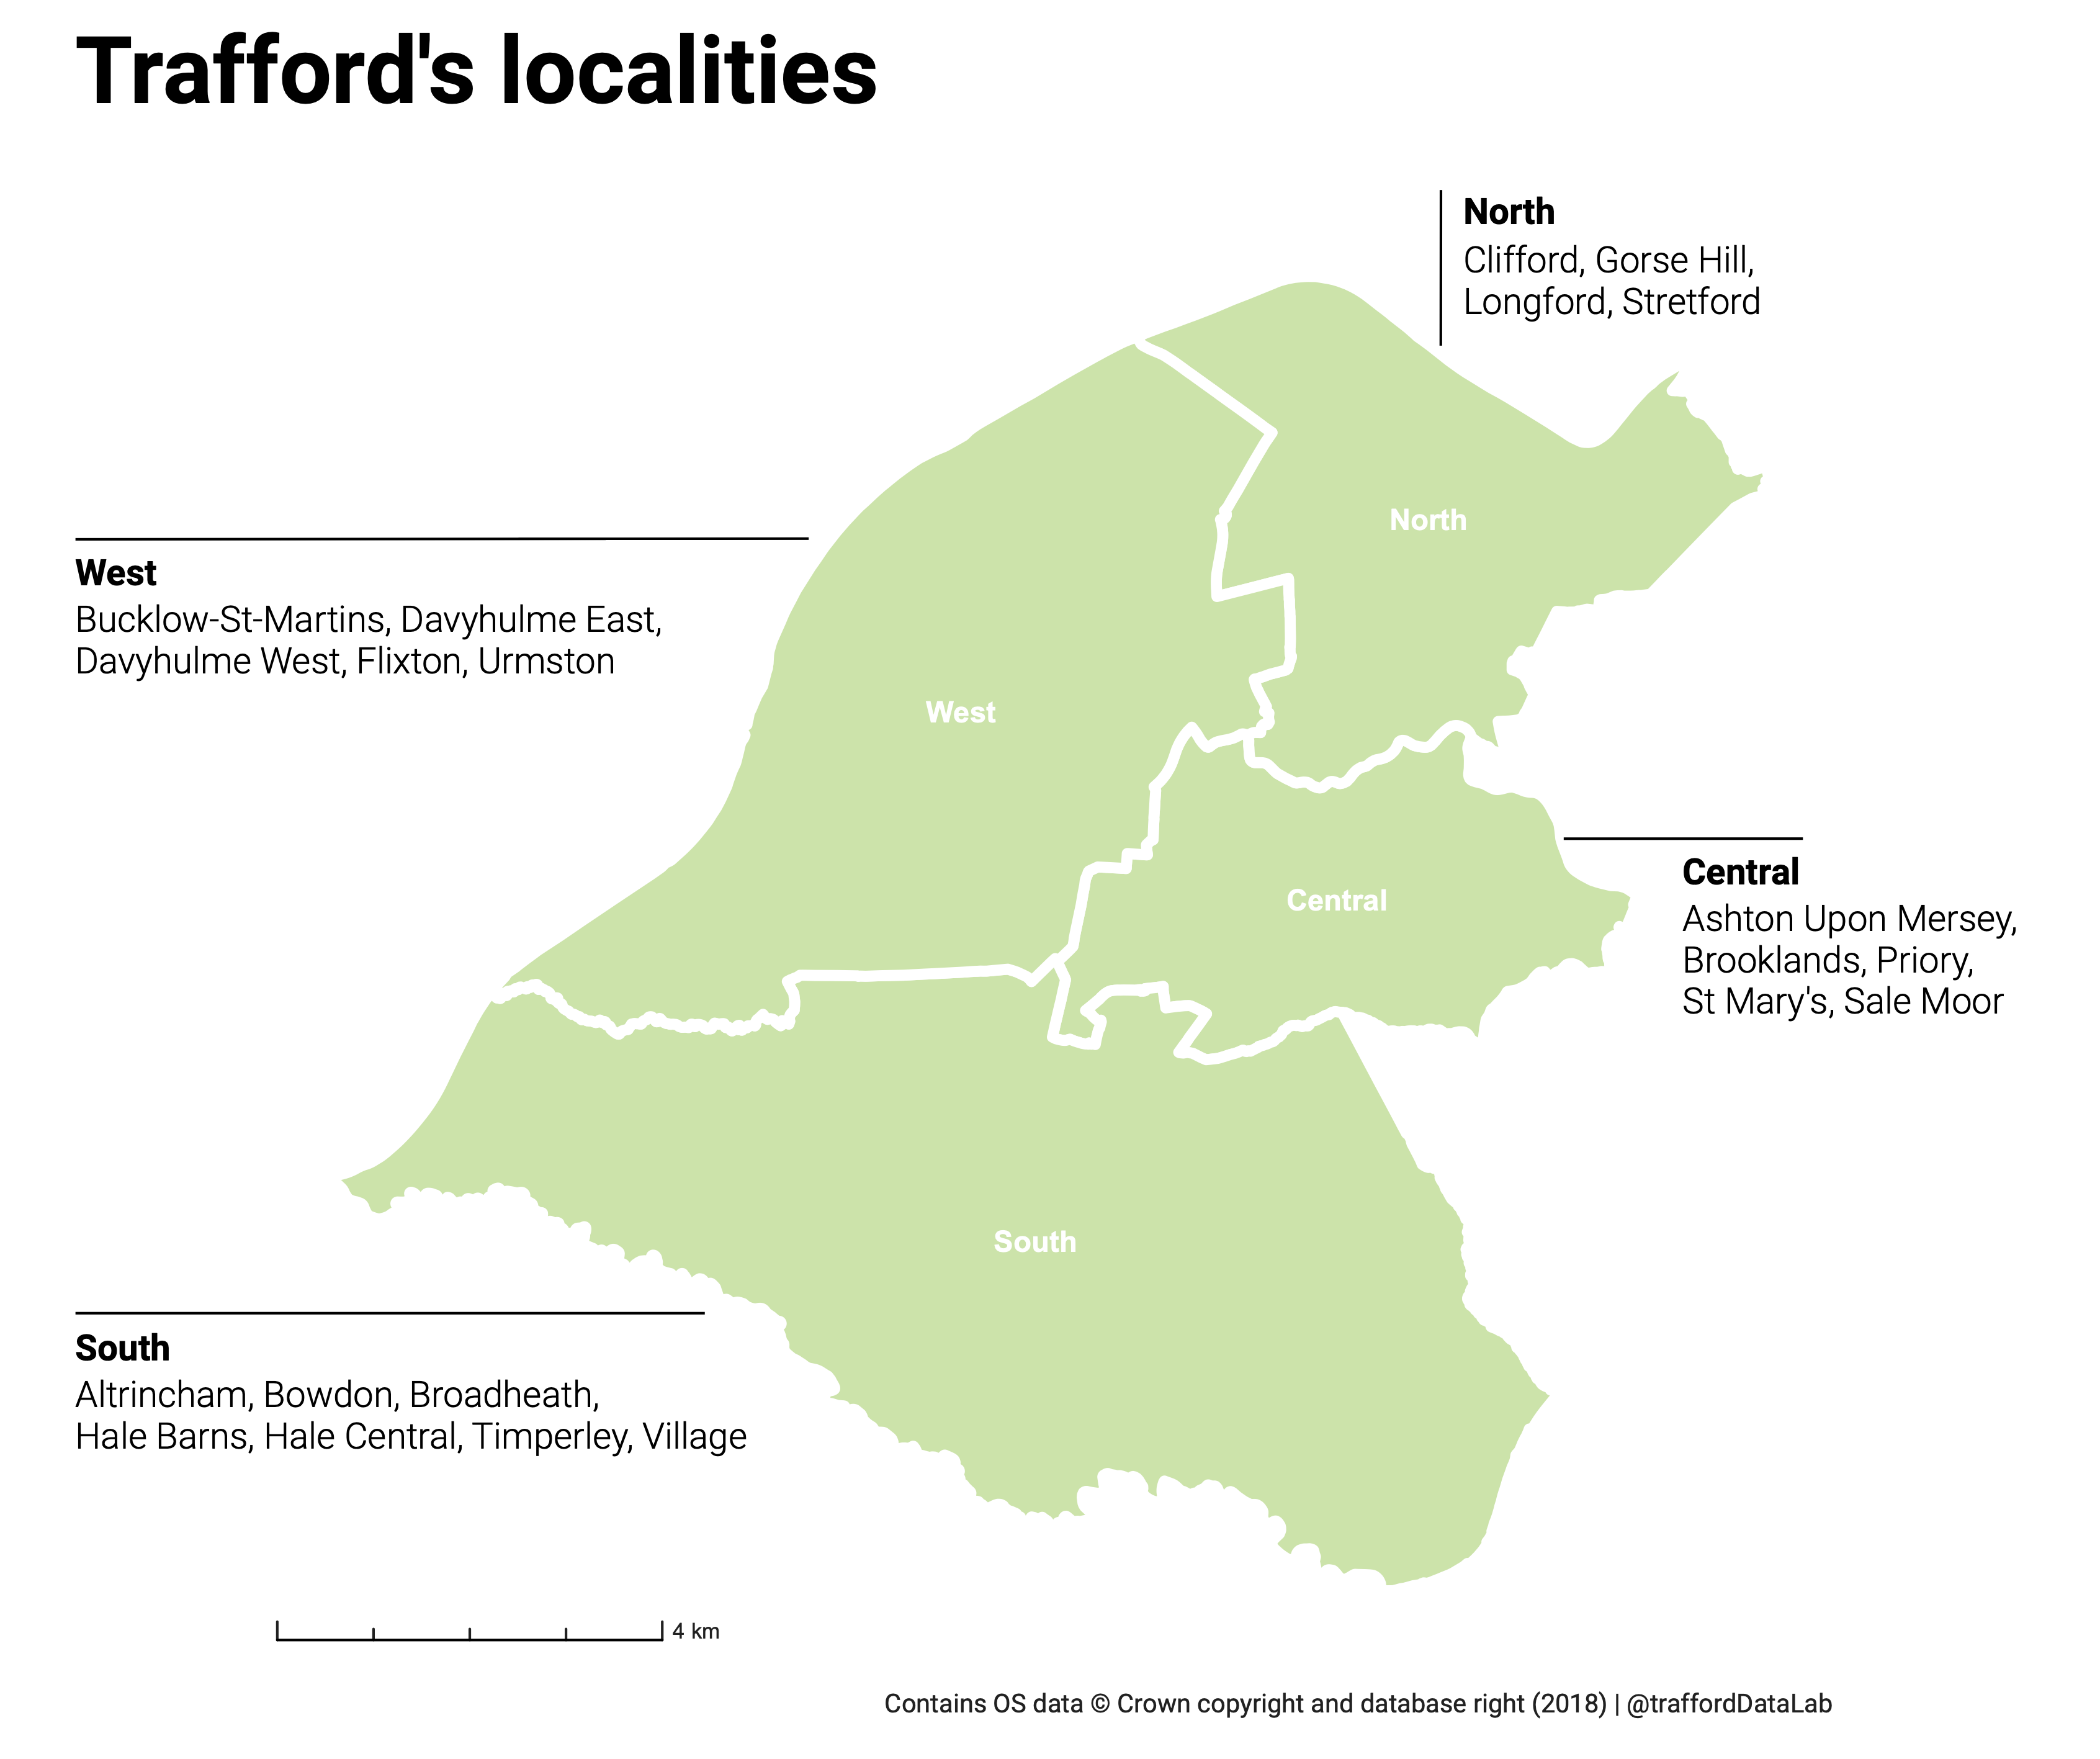 Map of Trafford showing the localities and the names of the wards in each.